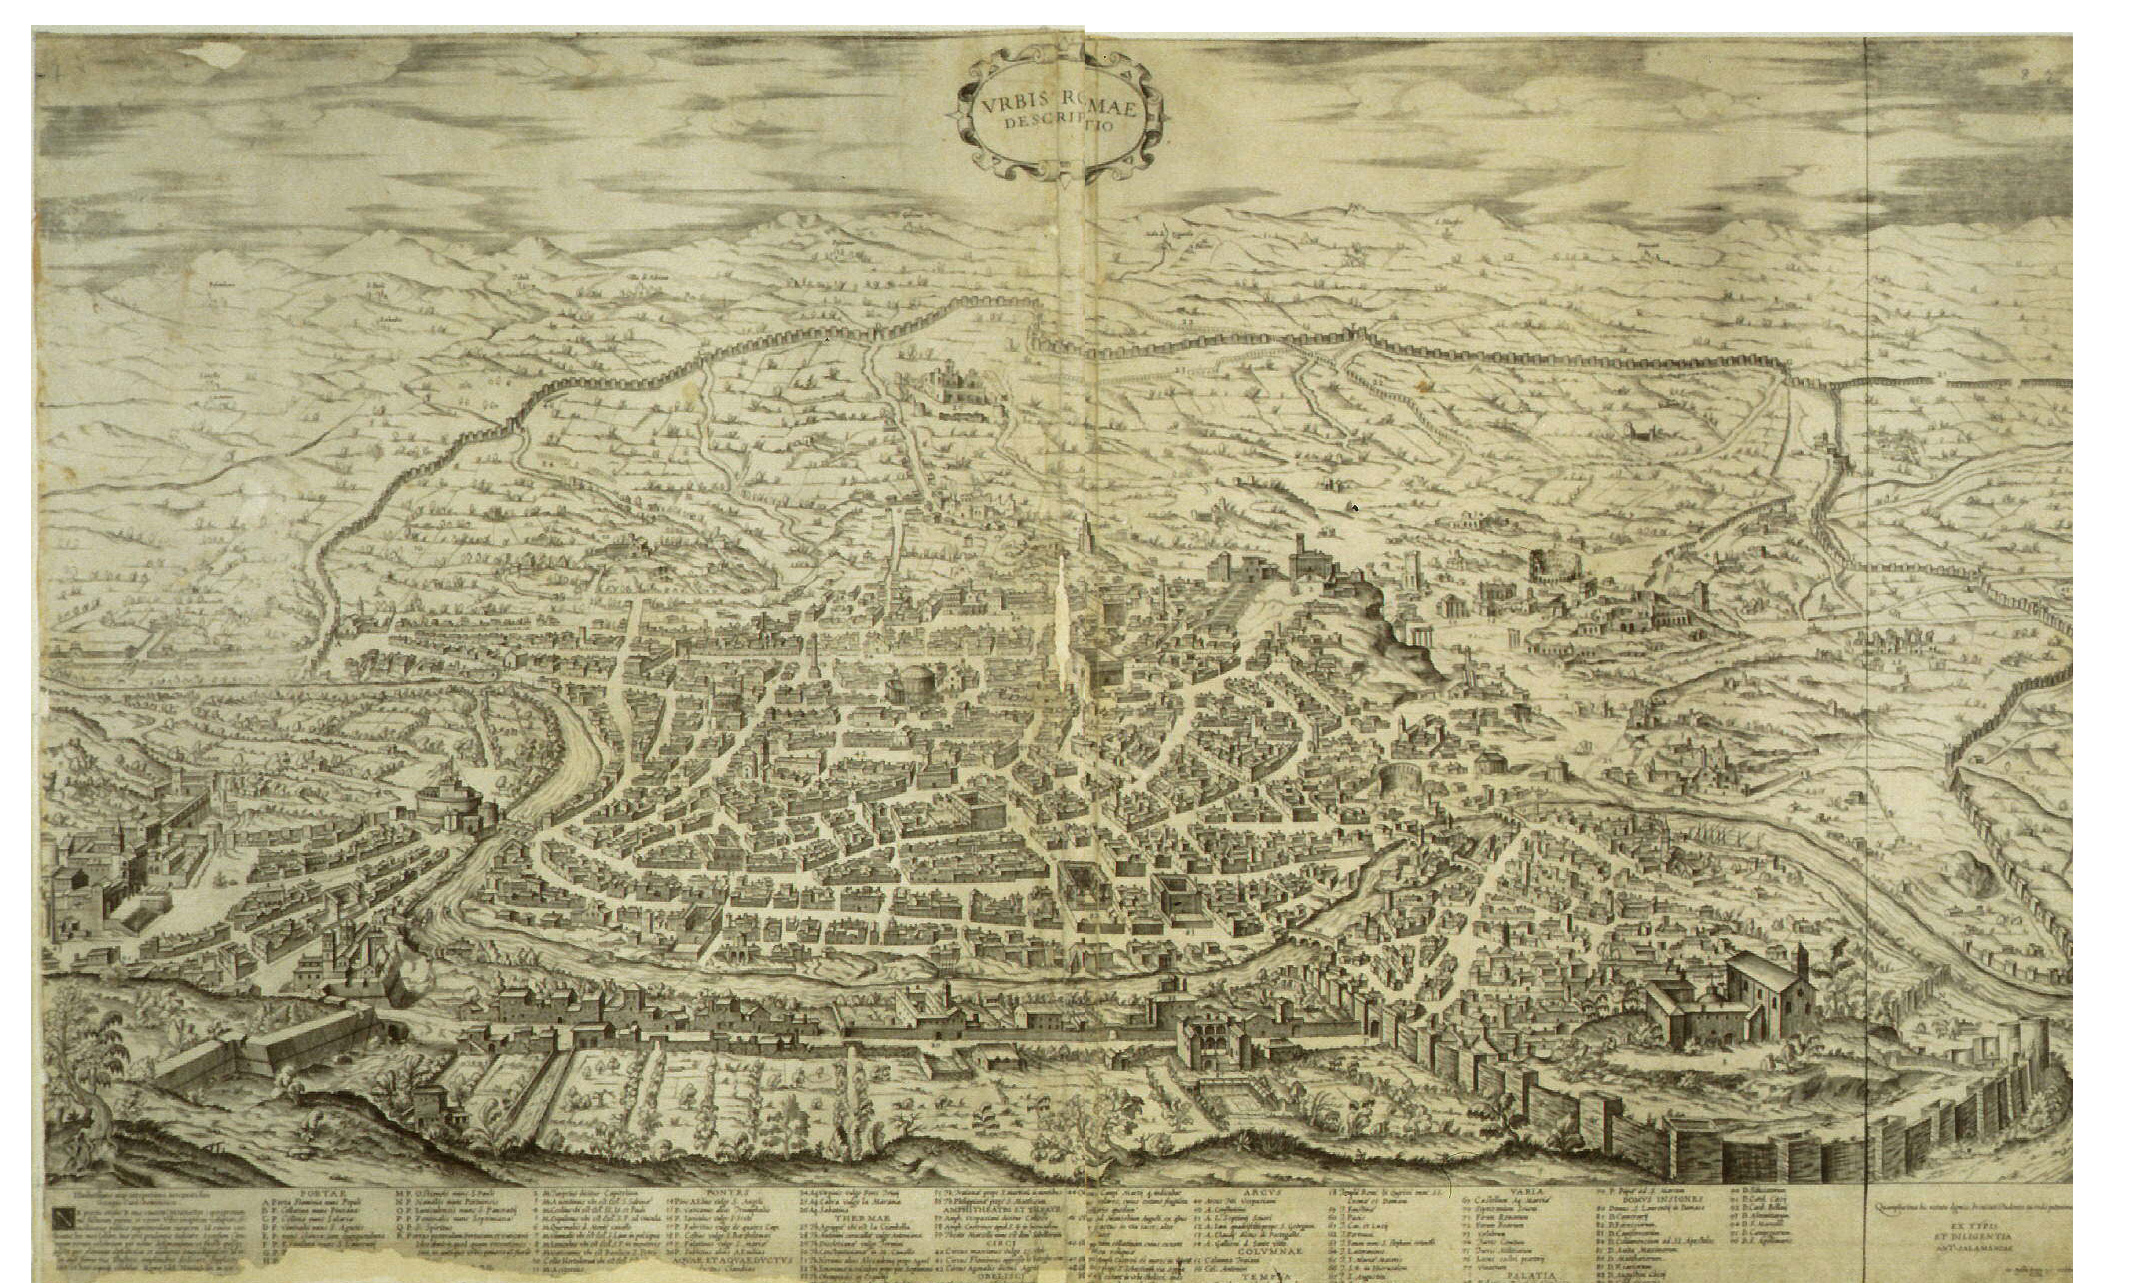 File:Map of Rome, Ugo Pinard 1555.jpg